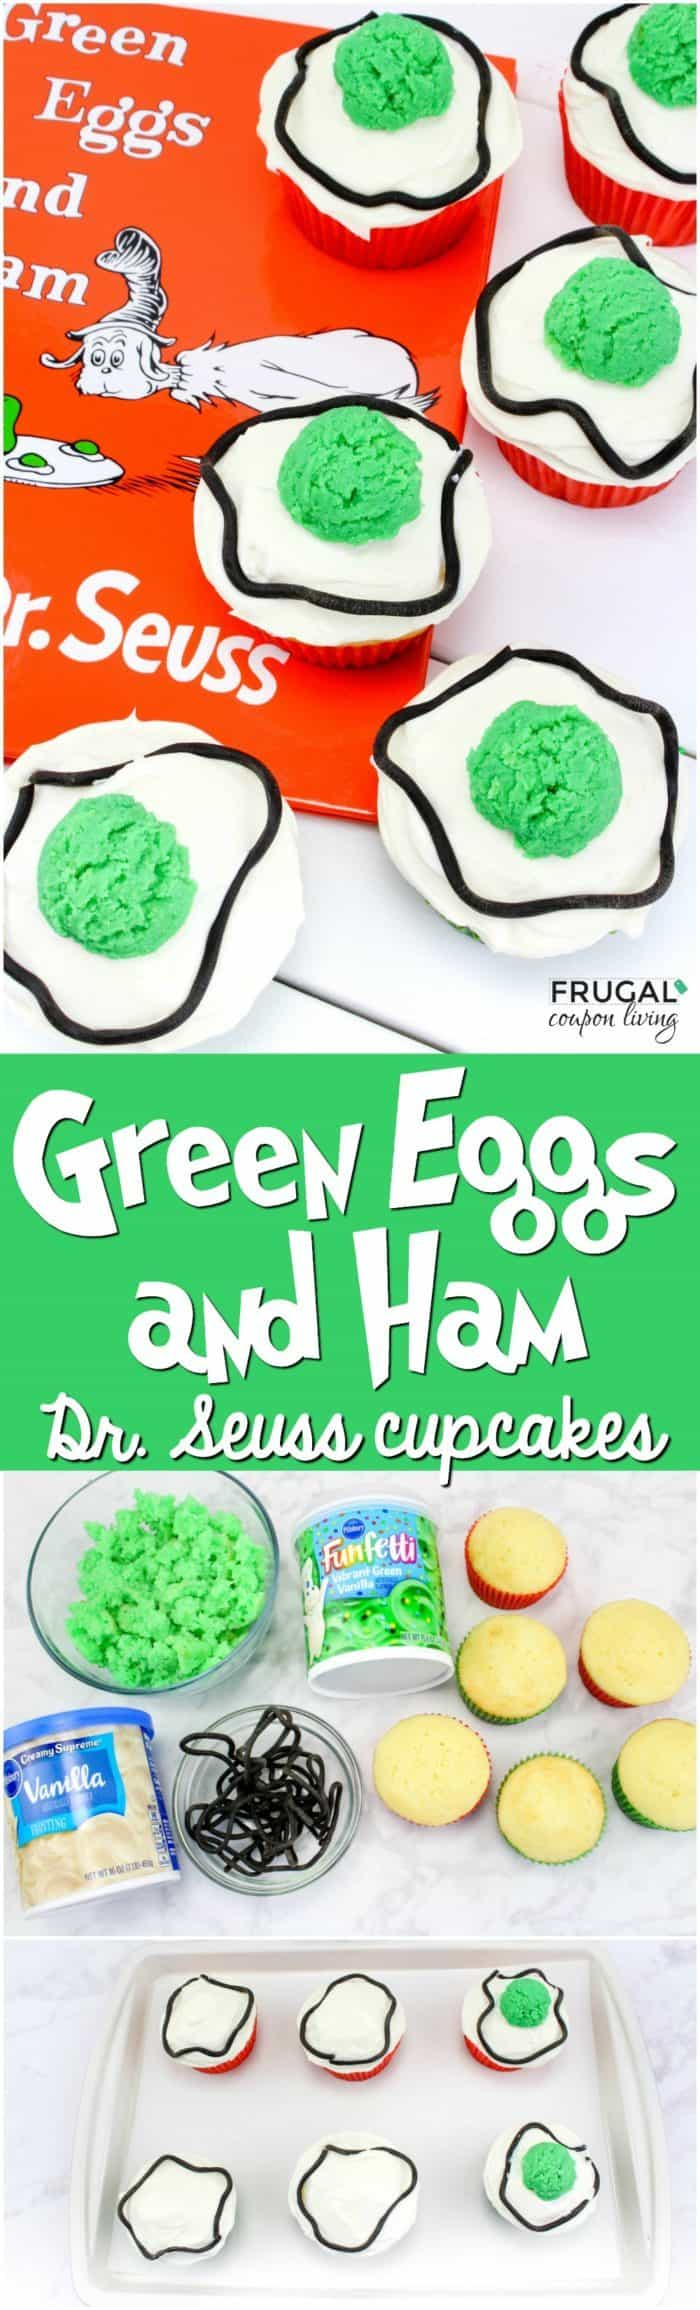 Green Eggs and Ham Dr. Seuss Cupcakes